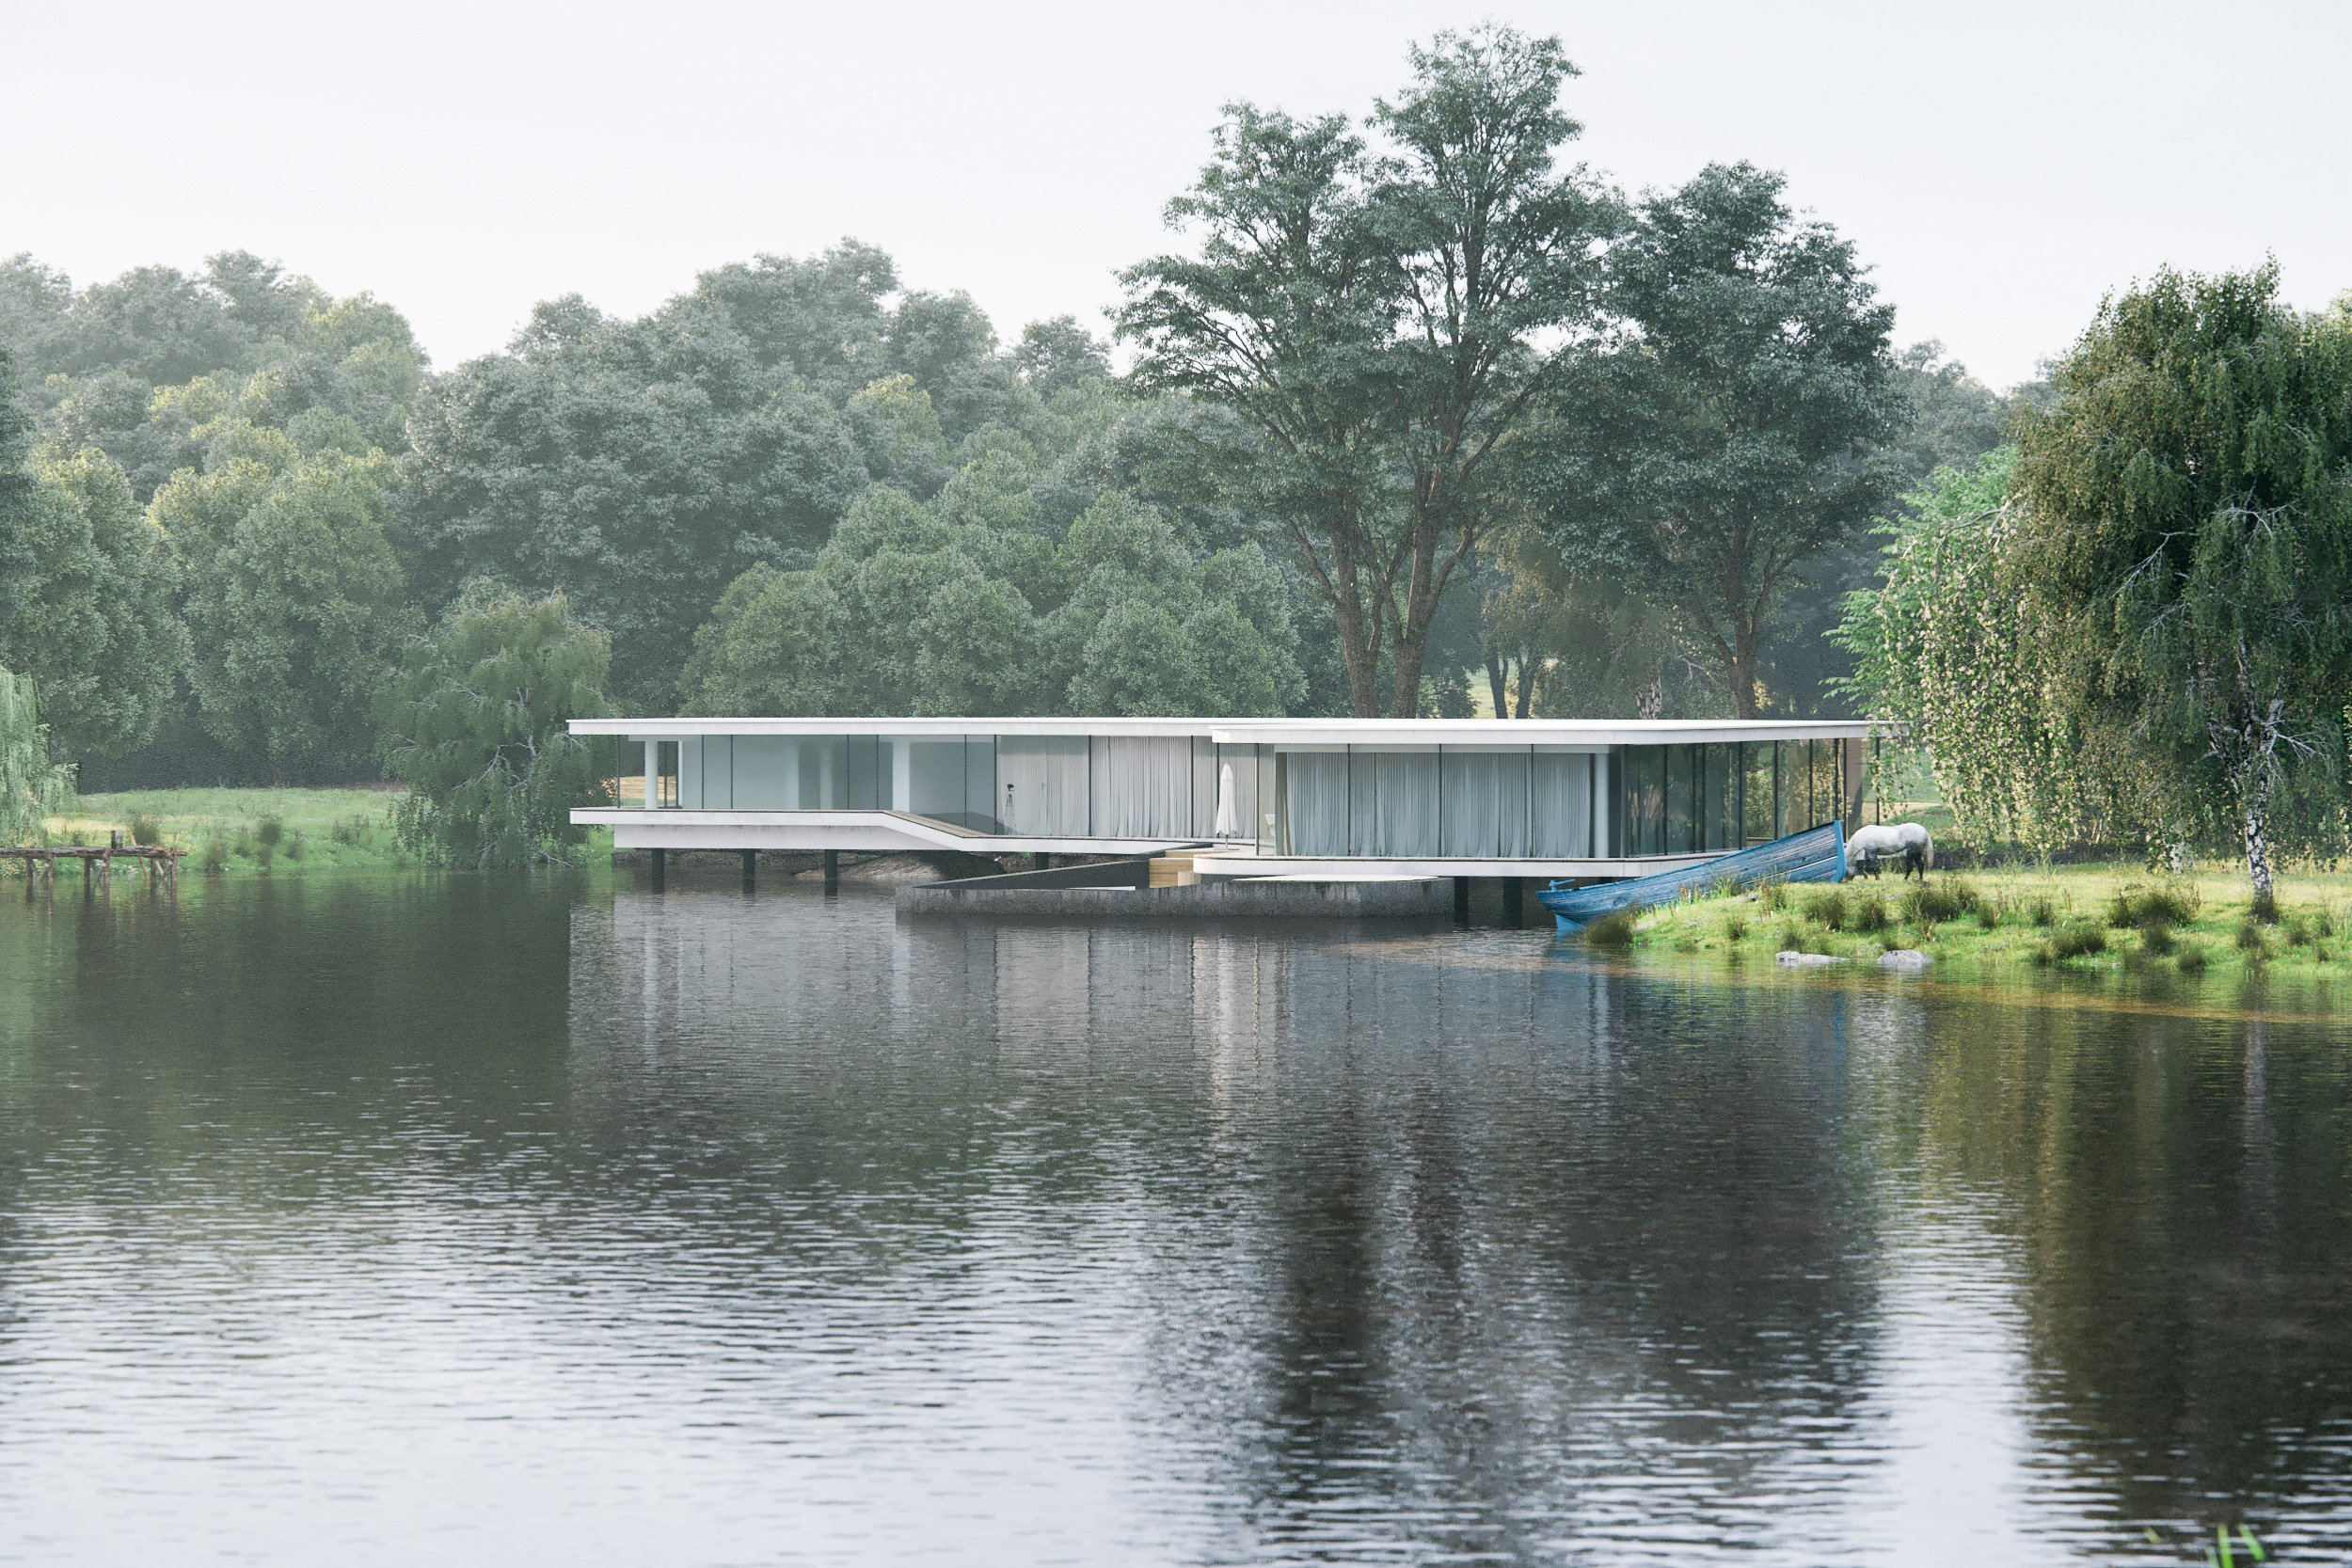 THE LAKE HOUSE'S CGI VISUALISATIONS